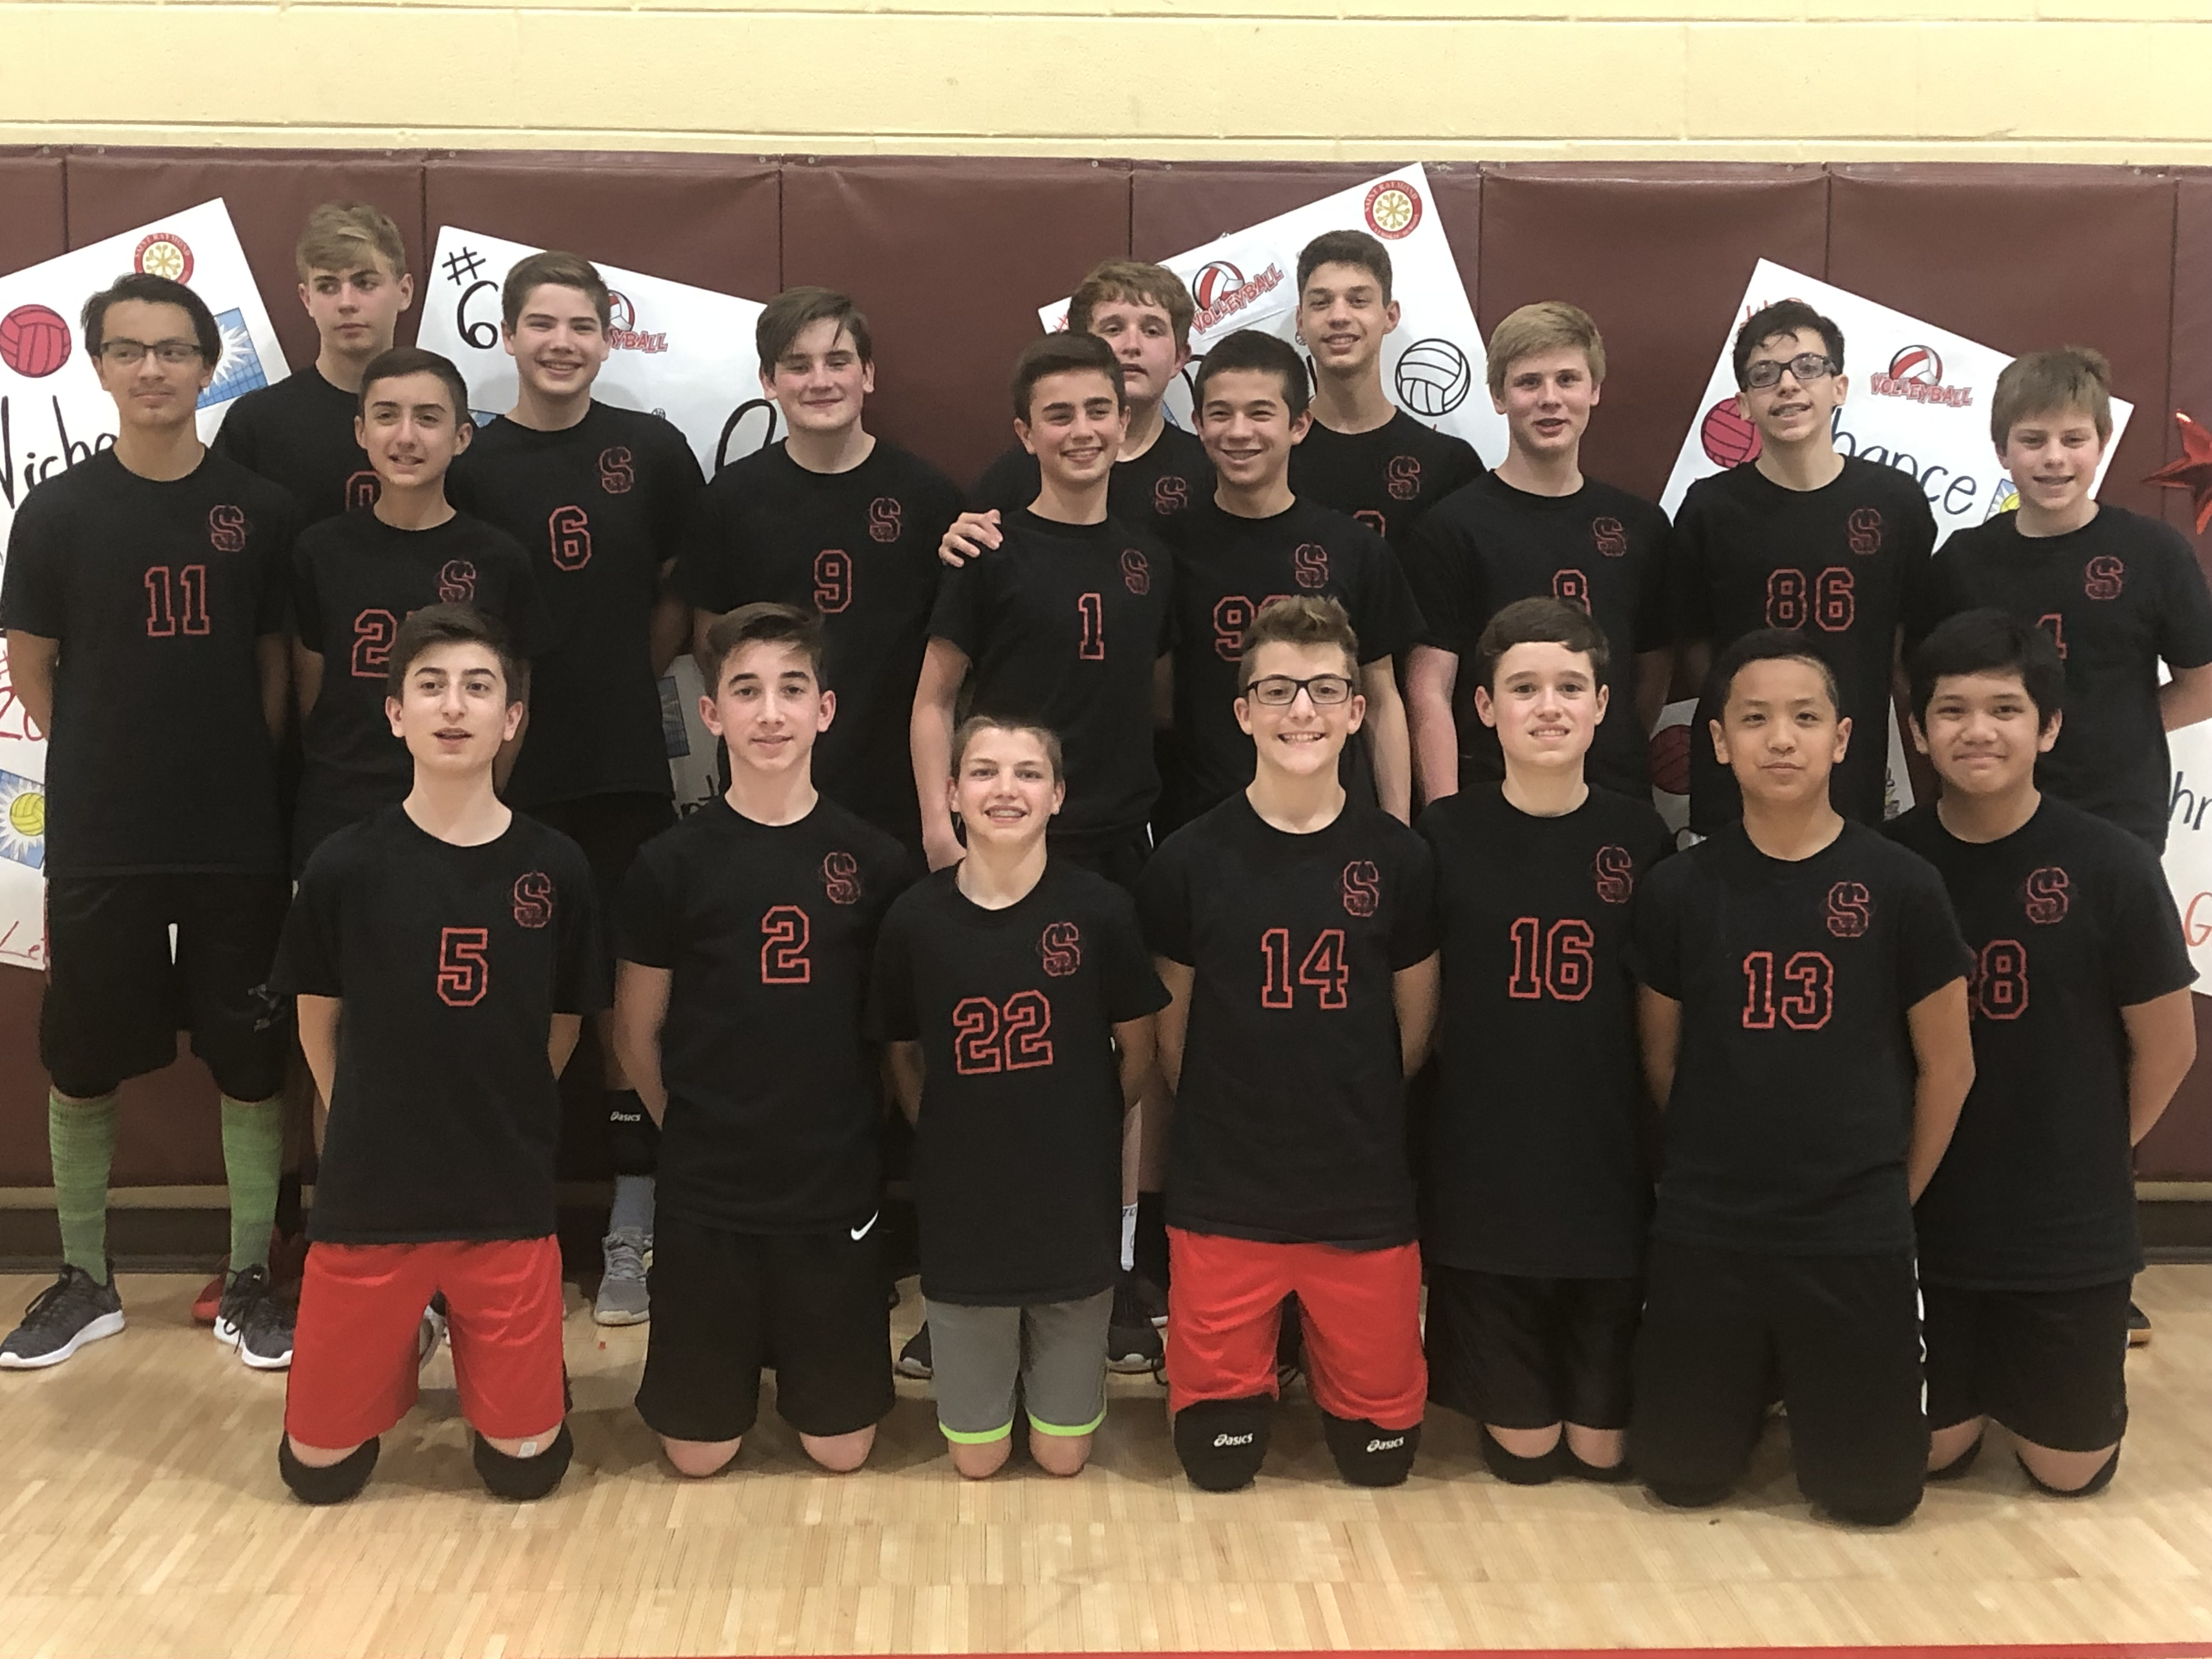 916602799 Good luck to our 7th and 8th grade boys volleyball teams on their play off  games tonight. 8th grade team 1 is playing St. James at 7pm at St. Francis.